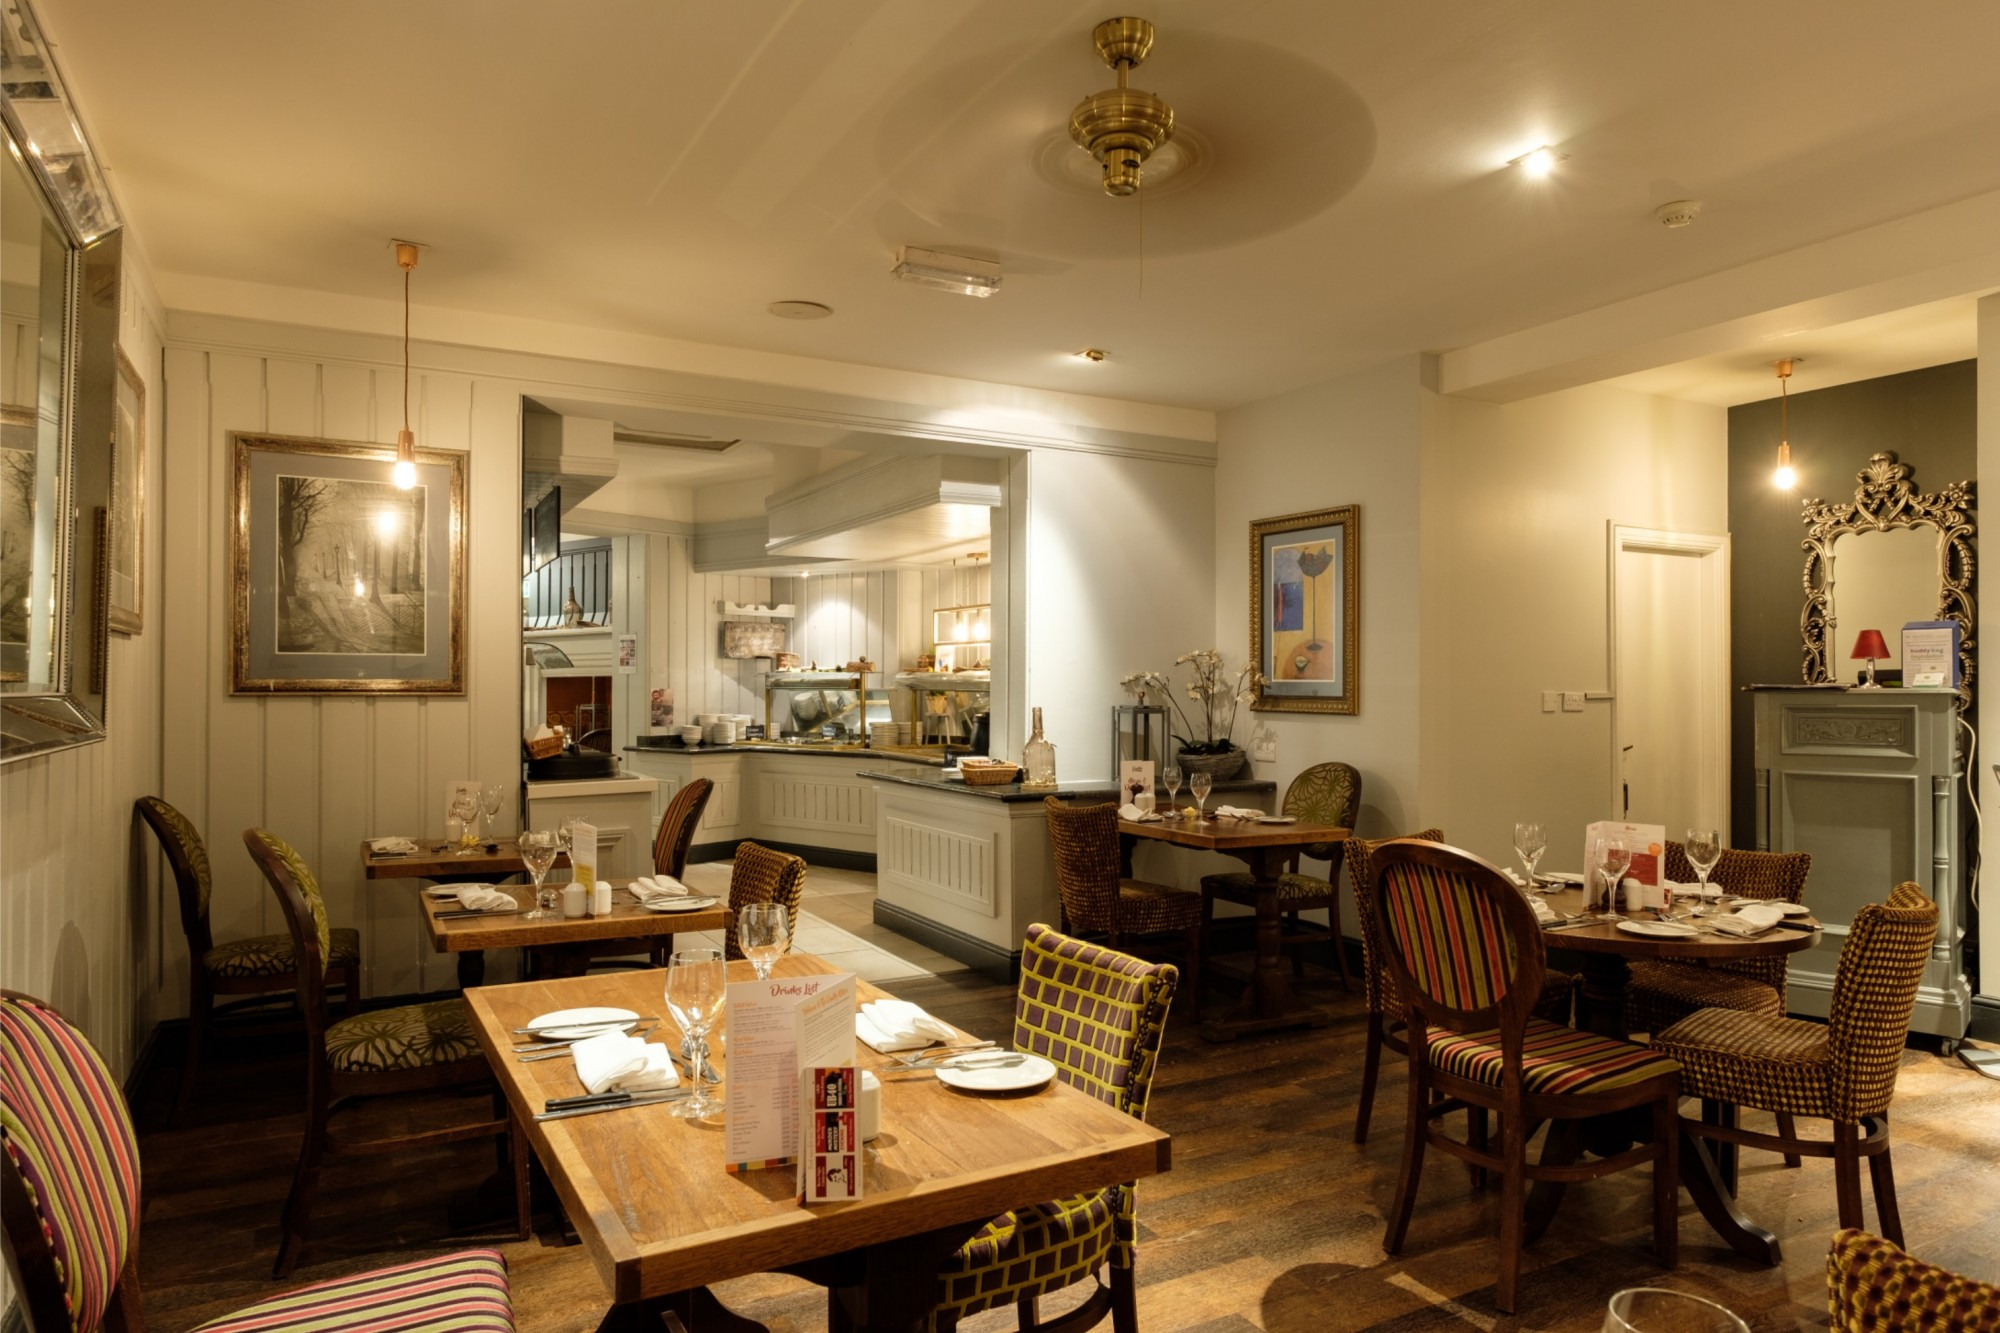 Country Kitchen Carvery Restaurant At Moor Hall Hotel Spa Popular Carvery In Sutton Coldfield